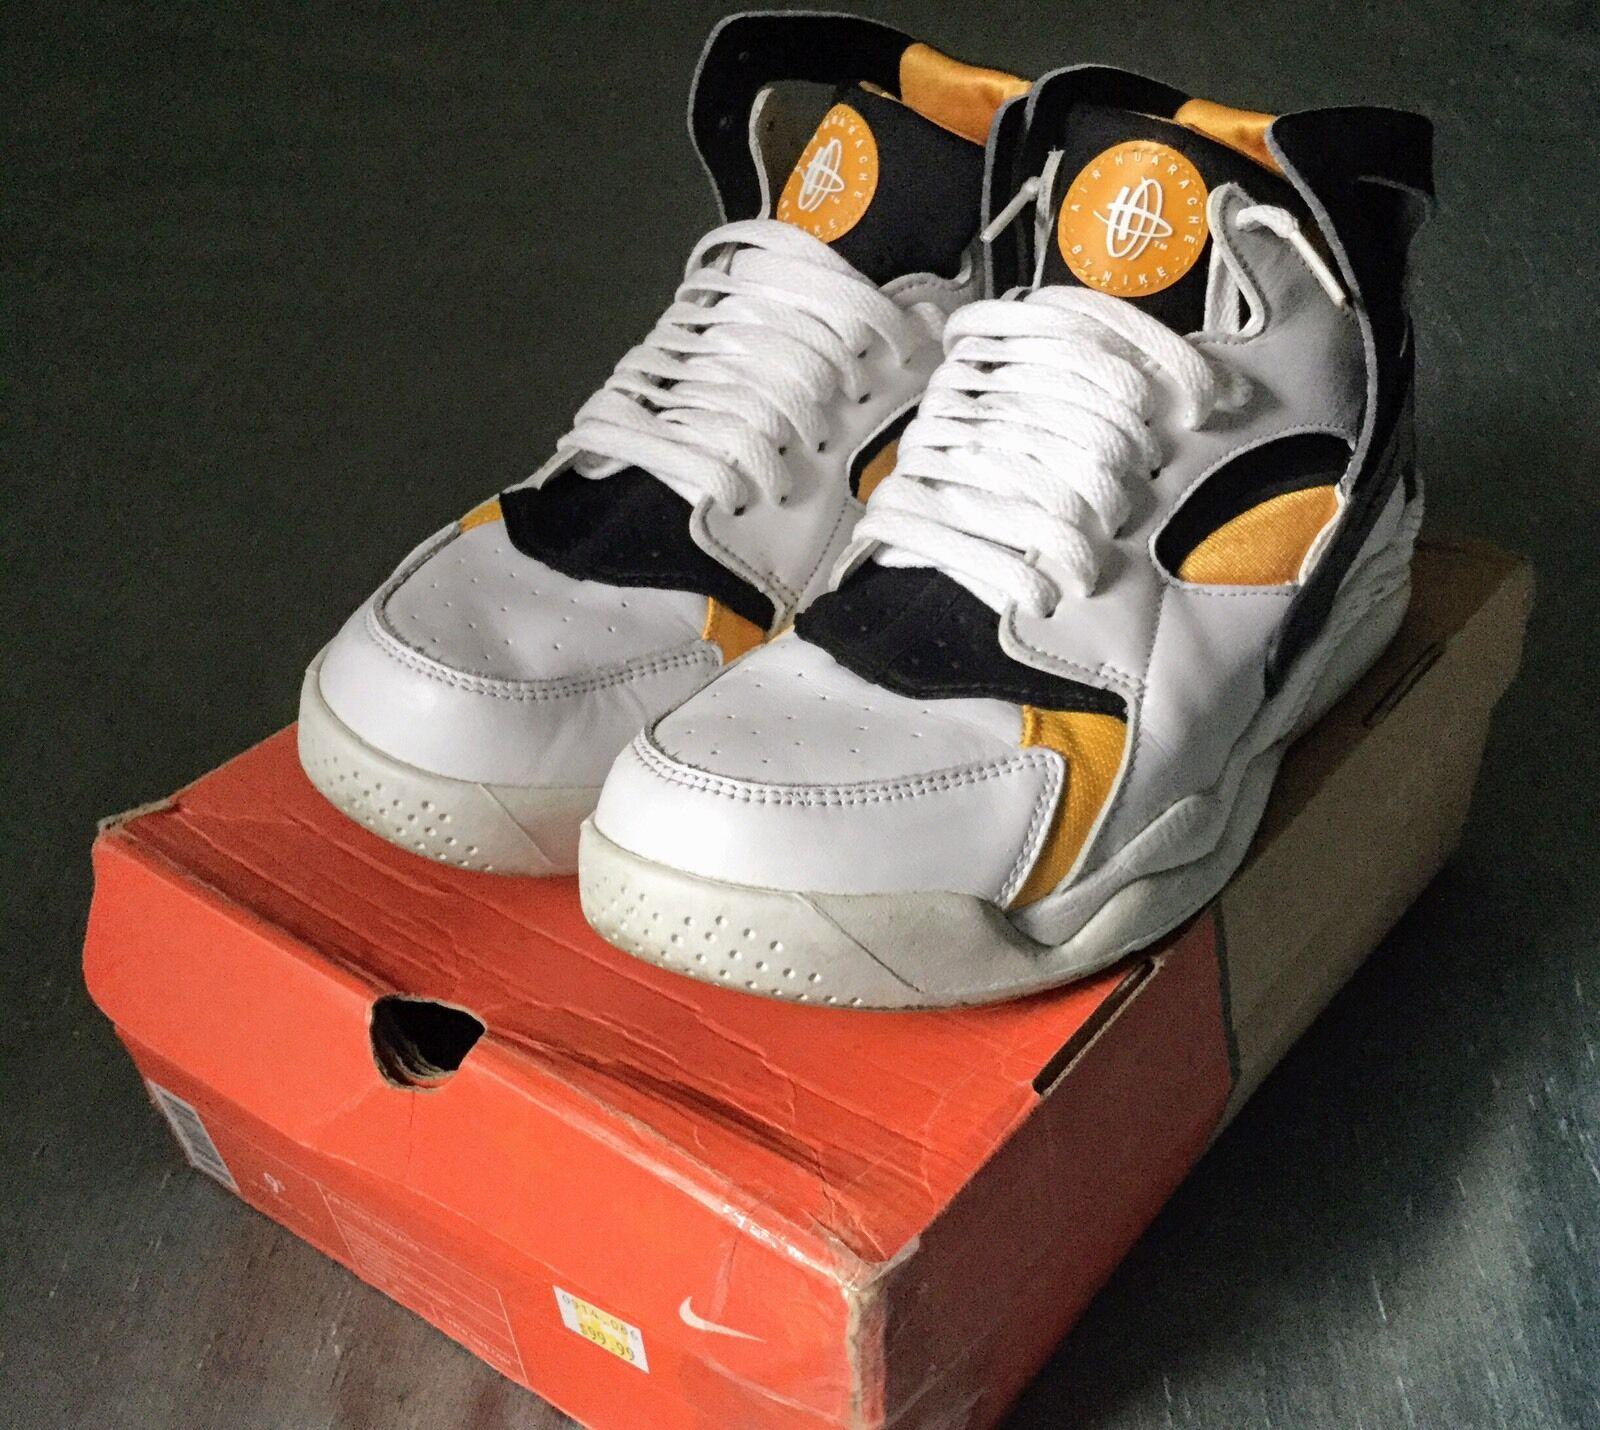 NM Nike Air Flight Huarache 305439-102 white black pro gold 2018 size 9 The latest discount shoes for men and women